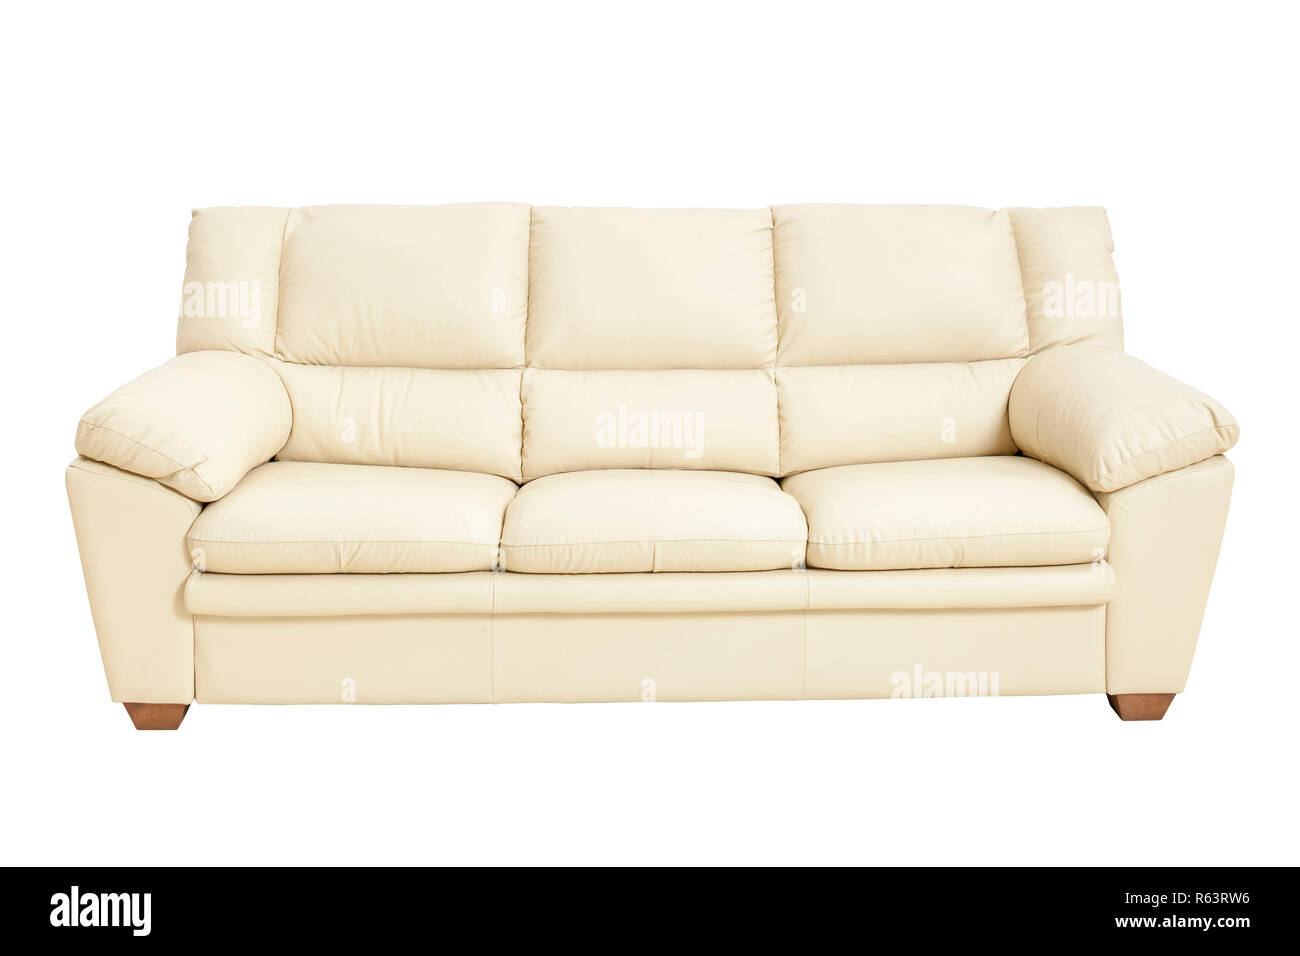 Stupendous Three Seats Cozy Leather Sofa In Nice Champagne Color Pdpeps Interior Chair Design Pdpepsorg